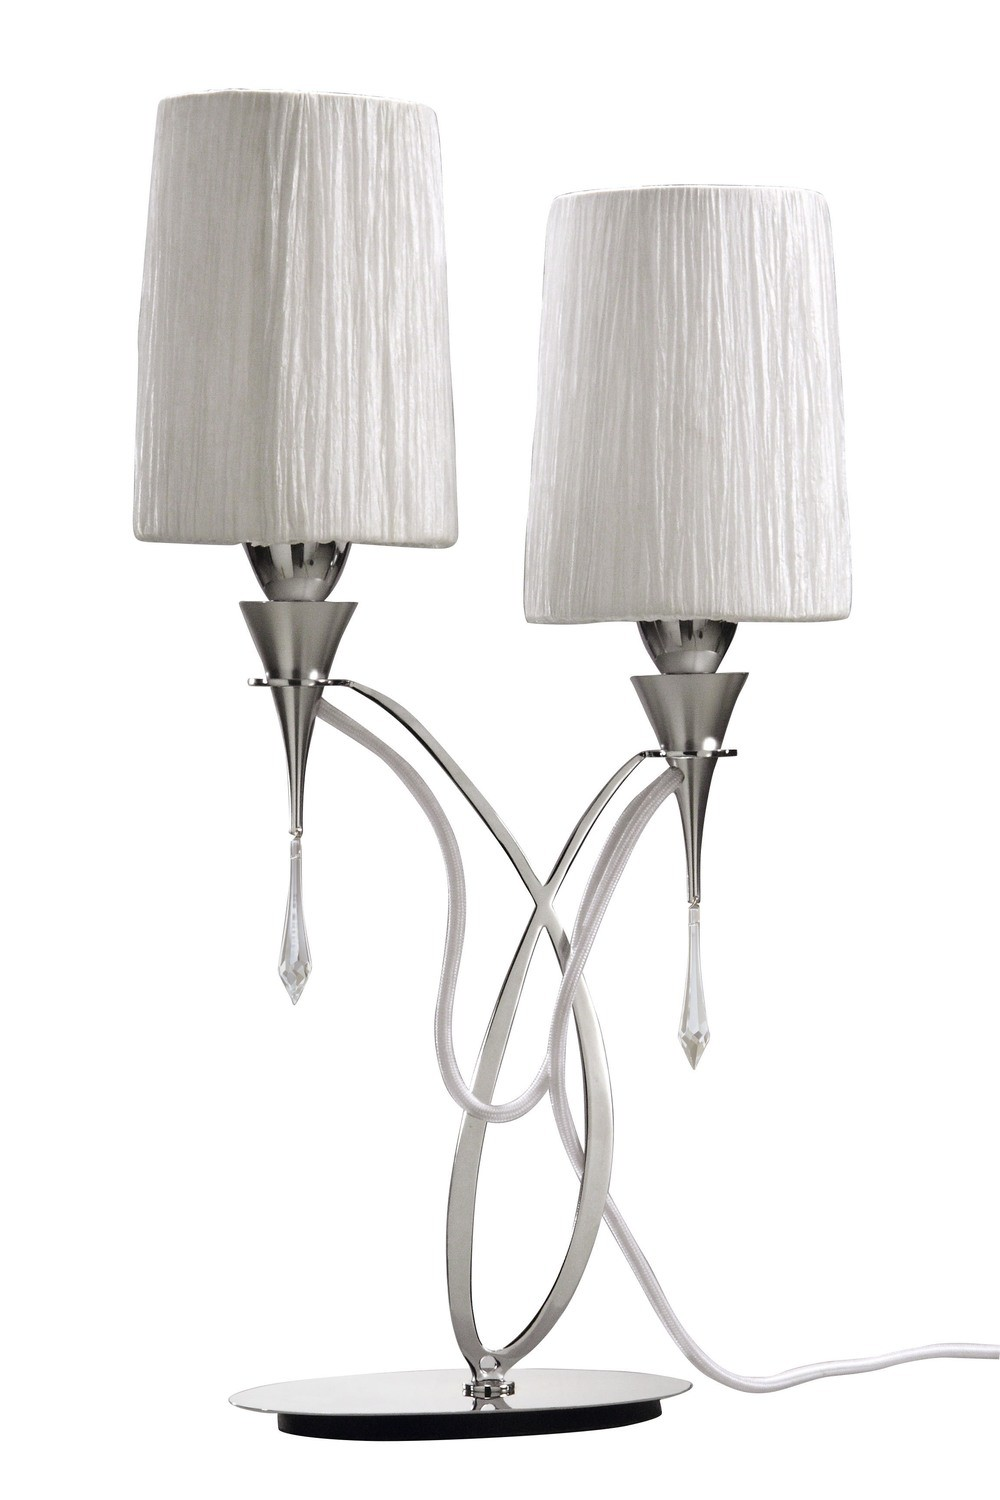 Lucca Table Lamp 2 Light E27, Polished Chrome With White Shades & Clear Crystal